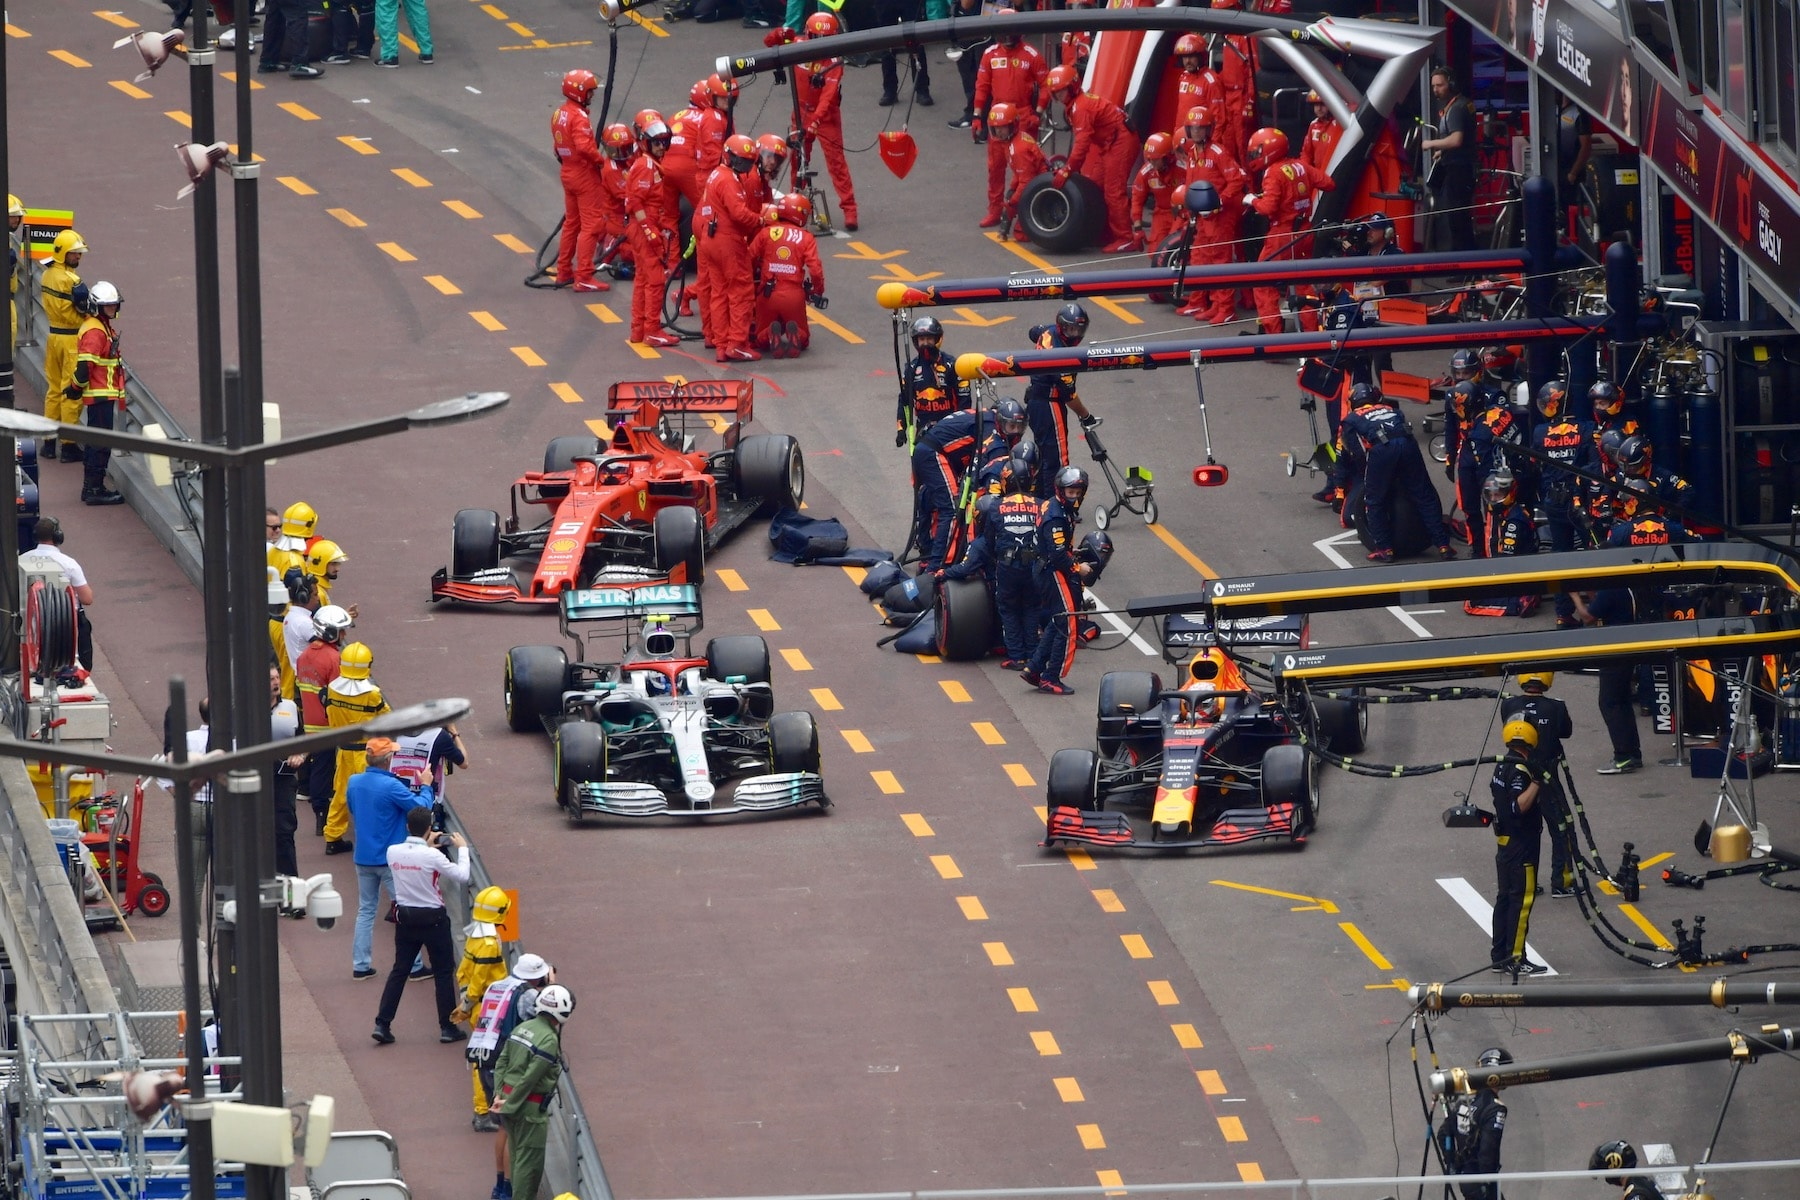 3 2019 Monaco GP SUNDAY 16.jpg